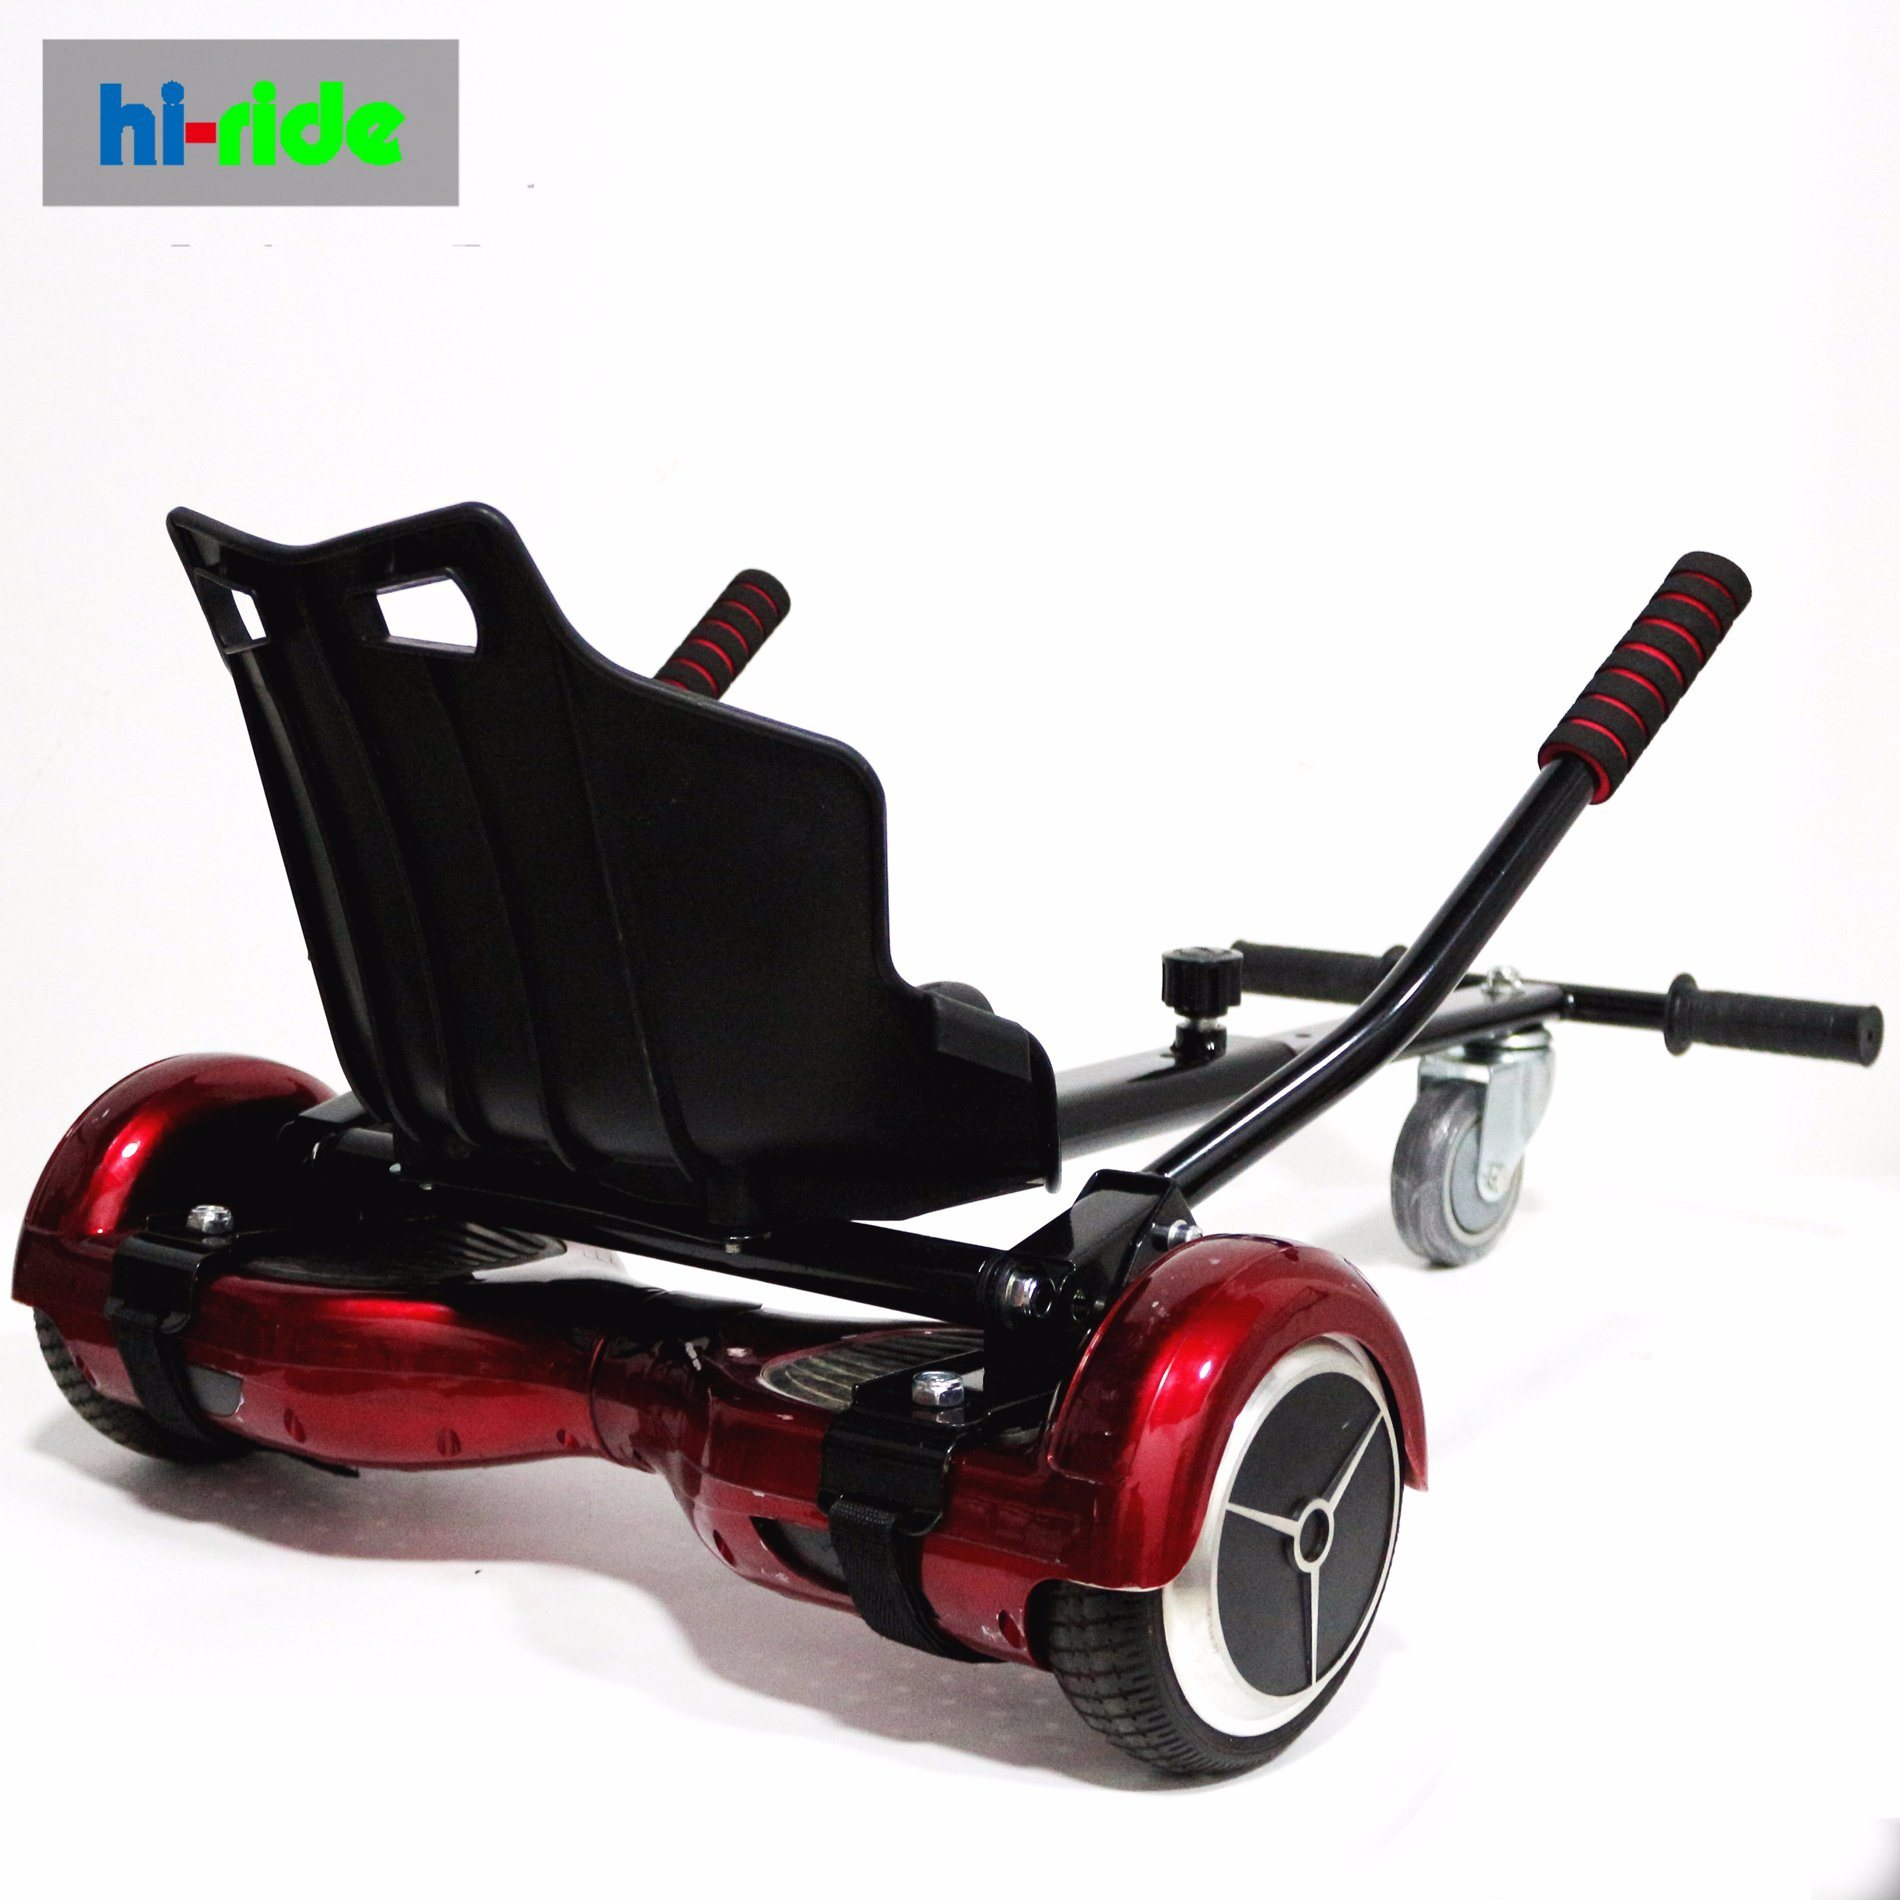 Genial 2018 Best Selling Hover Chair For Kids Hoverkart And Go Cart Seat